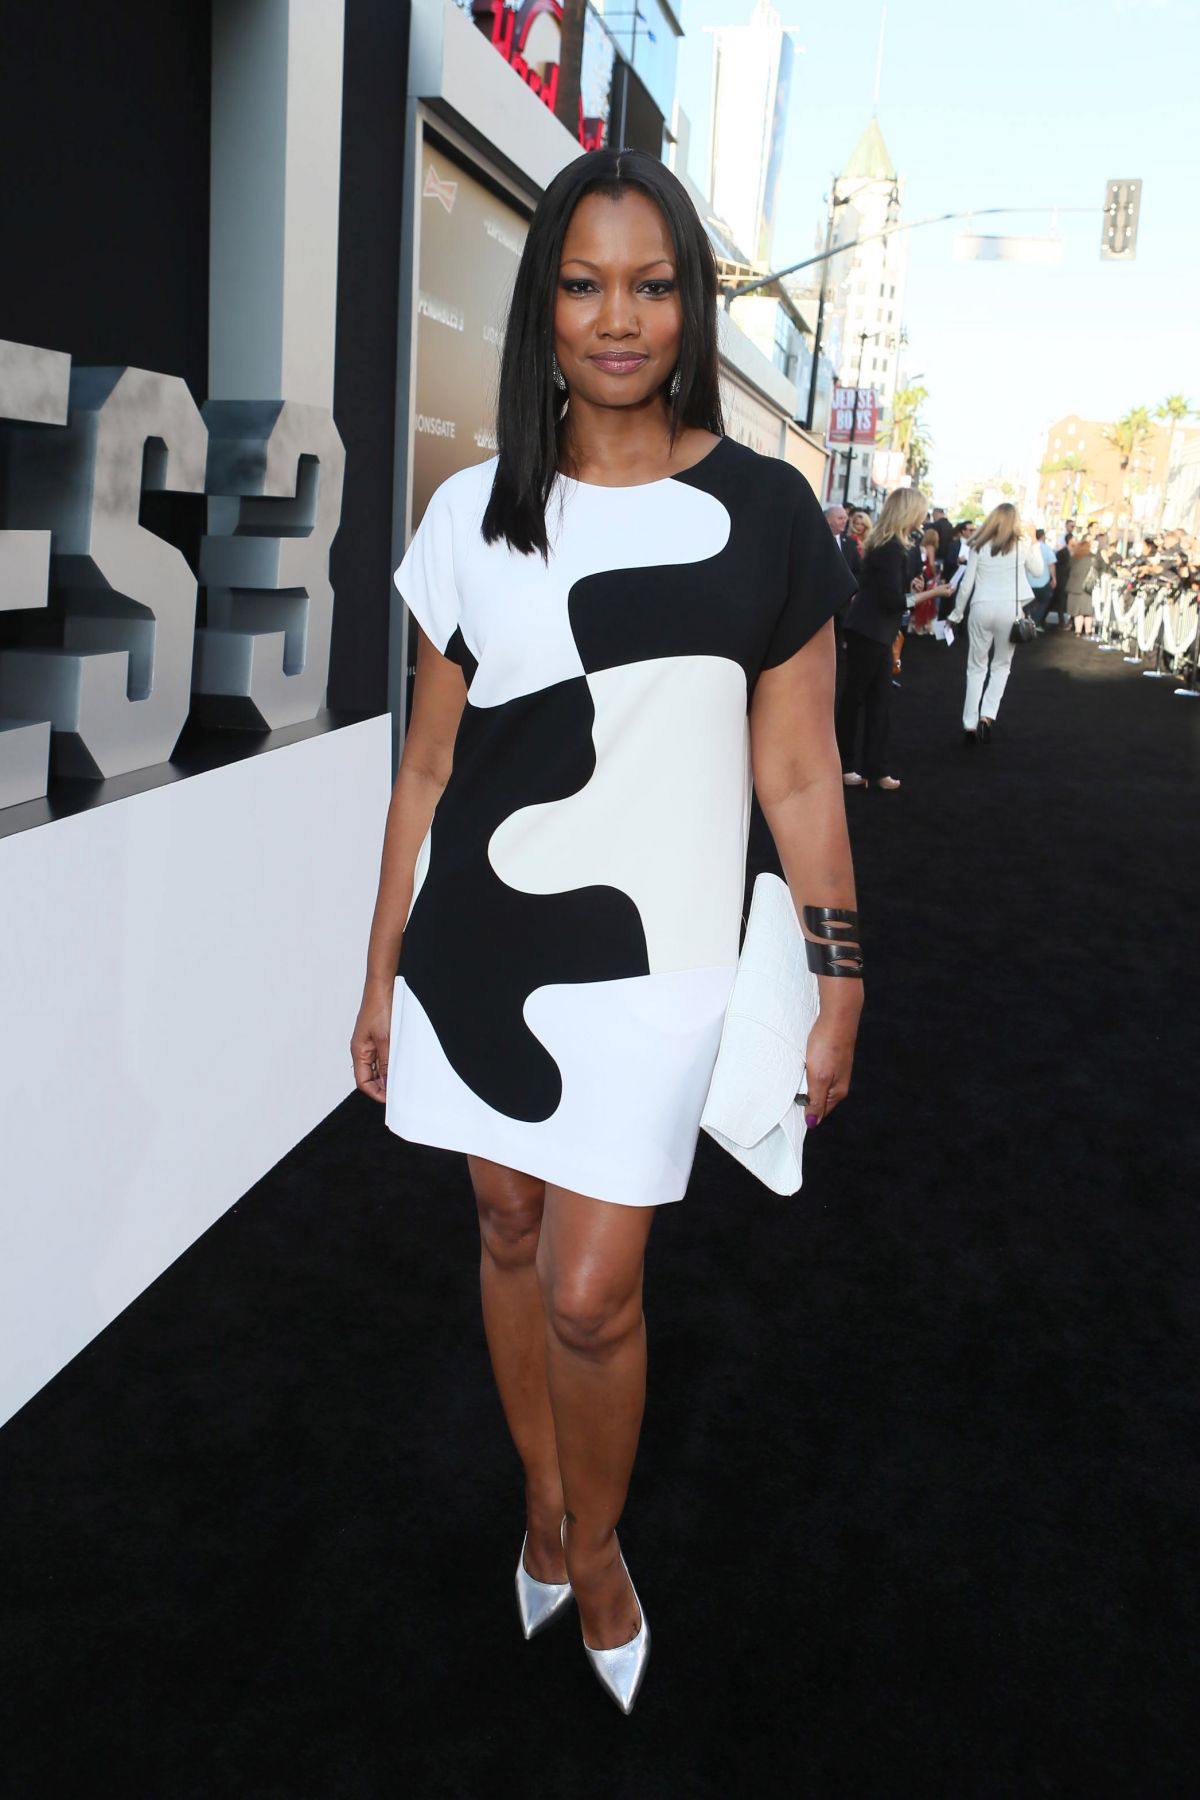 GARCELLE BEAUVAIS at The Expendables 3 Premiere in Los Angeles